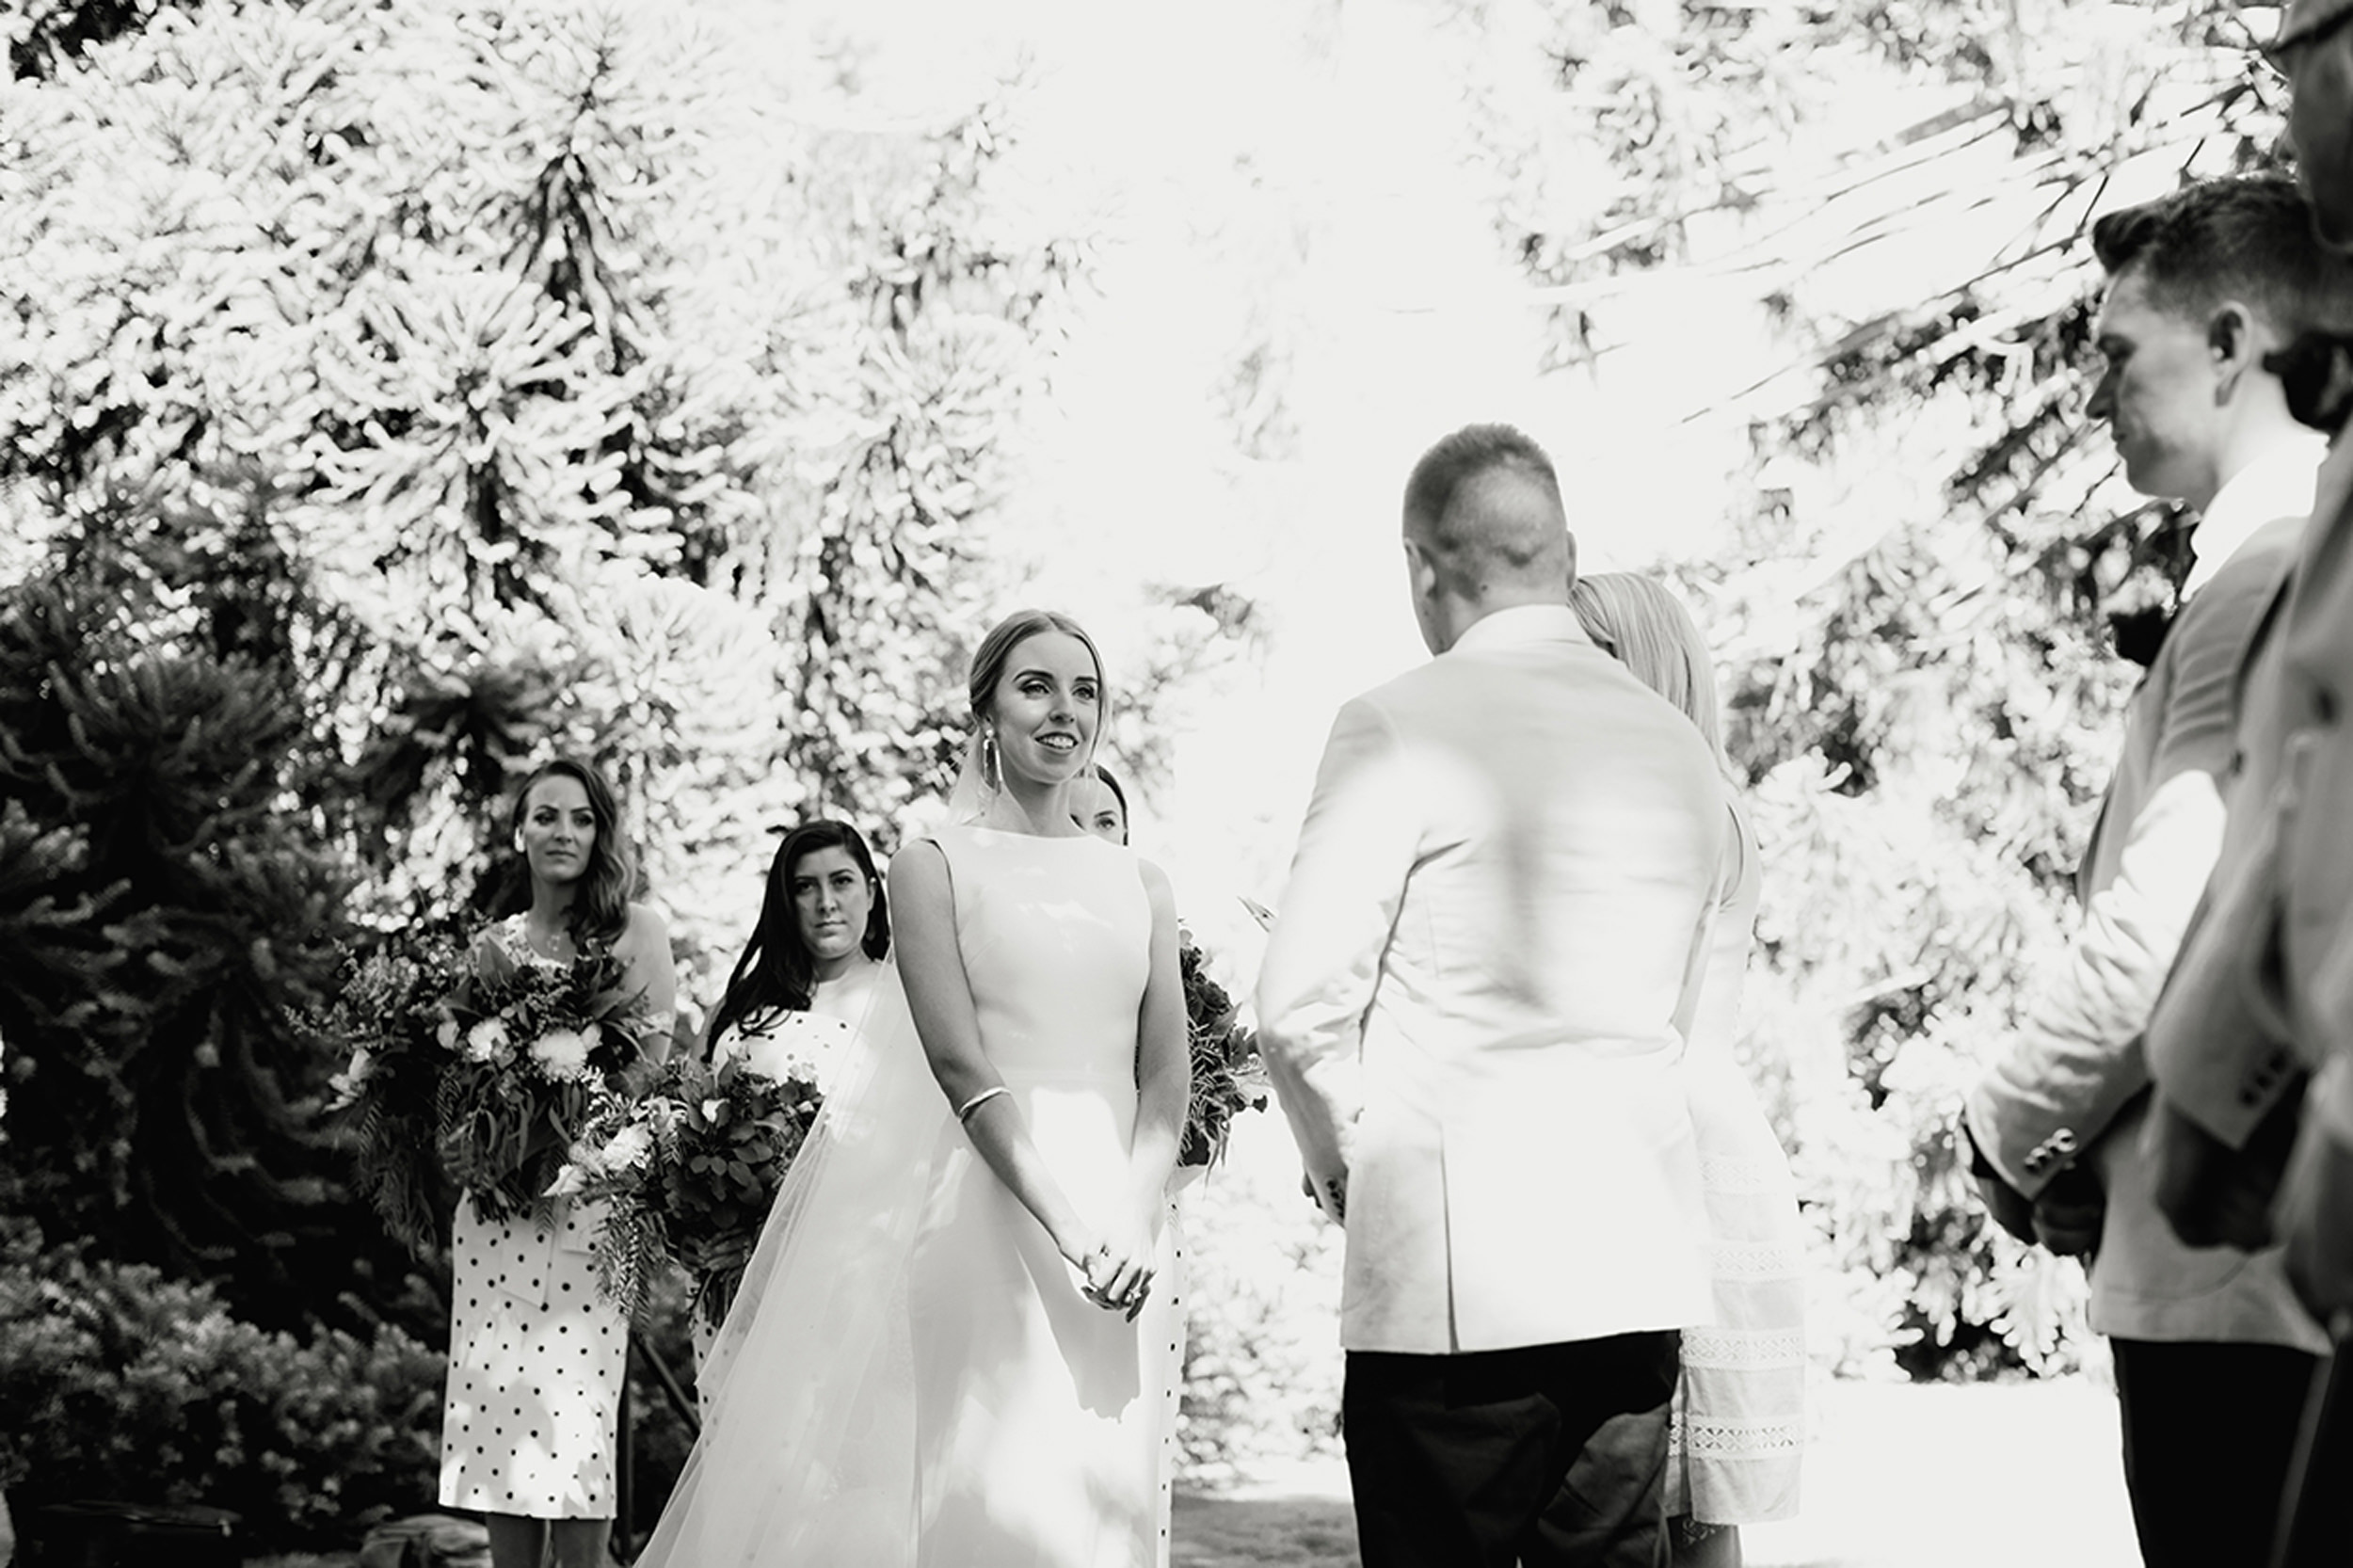 I_Got_You_Babe_Co._Megan_Andrew_Country_Property_Wedding_Victoria0032.JPG